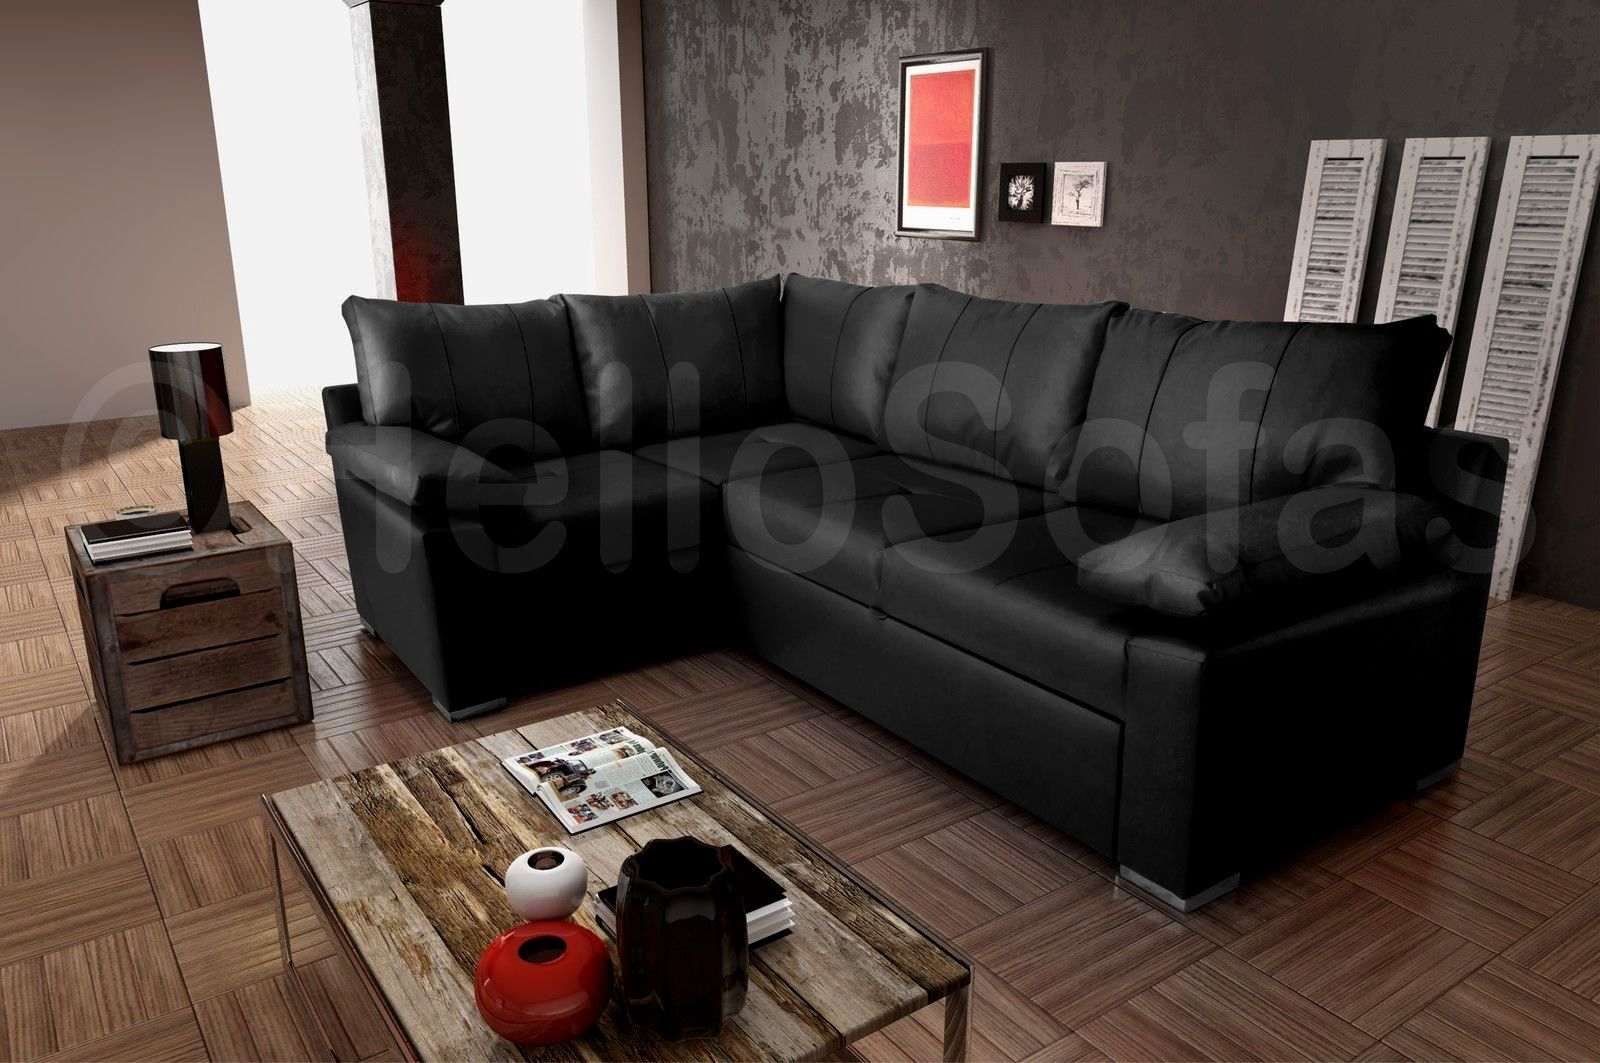 lovely lane leather sofa design-Finest Lane Leather sofa Gallery